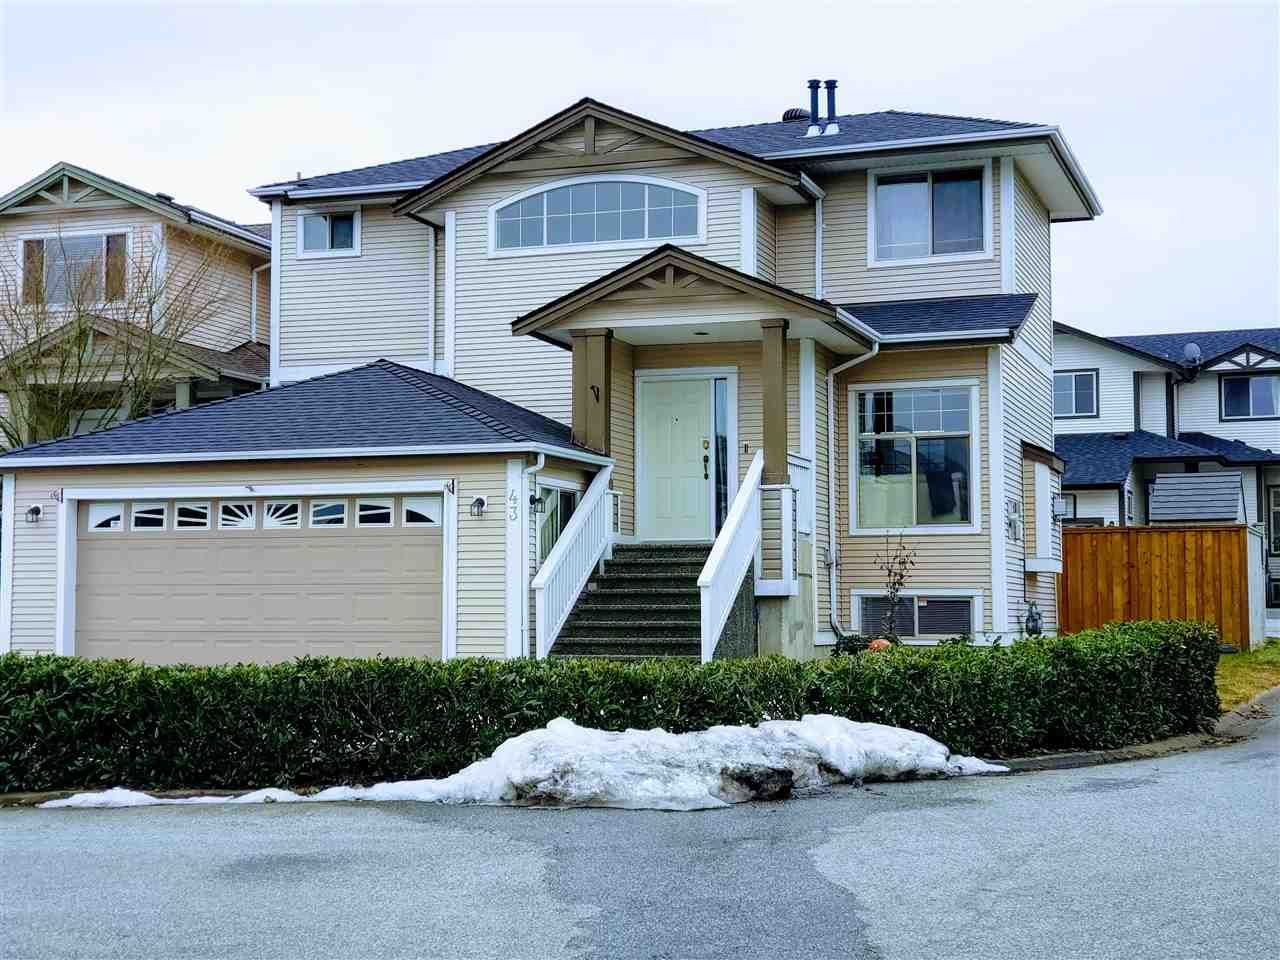 """Main Photo: 43 8675 209 Street in Langley: Walnut Grove House for sale in """"Sycamores"""" : MLS®# R2347304"""